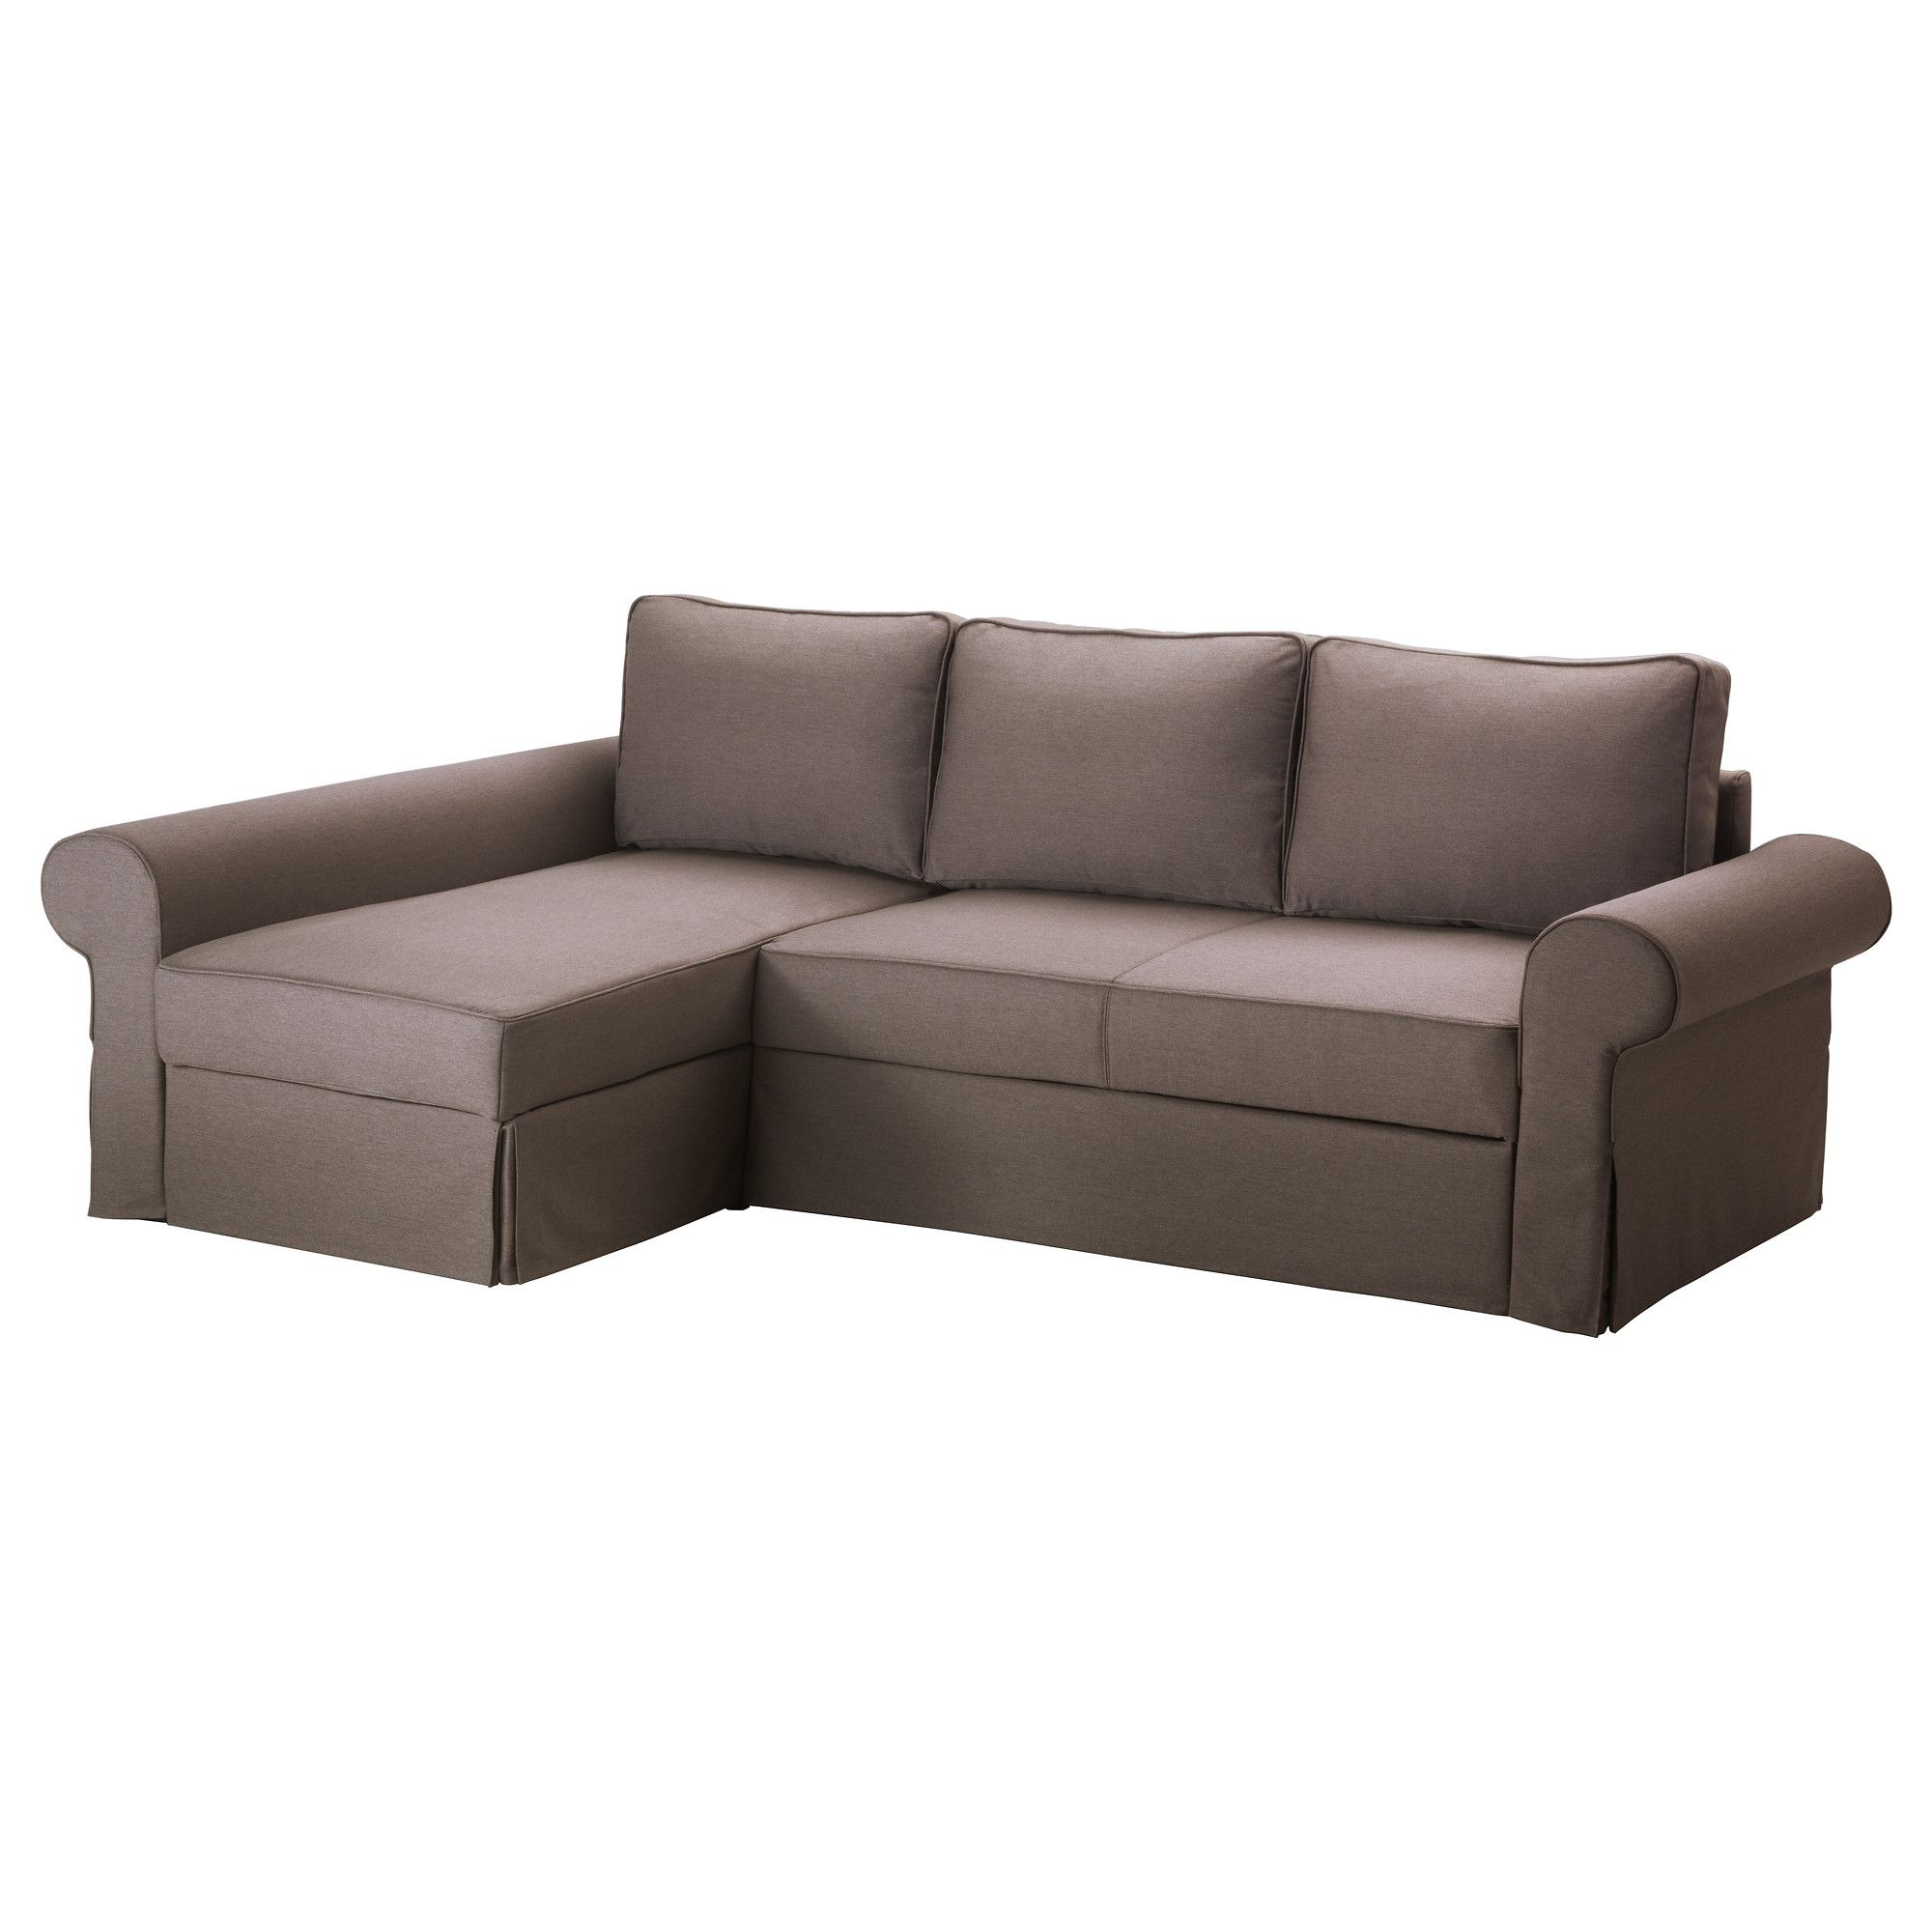 Ikea Sofas Chaise Longue Backabro/mattarp Divano Letto Con Chaise-longue - Jonsboda